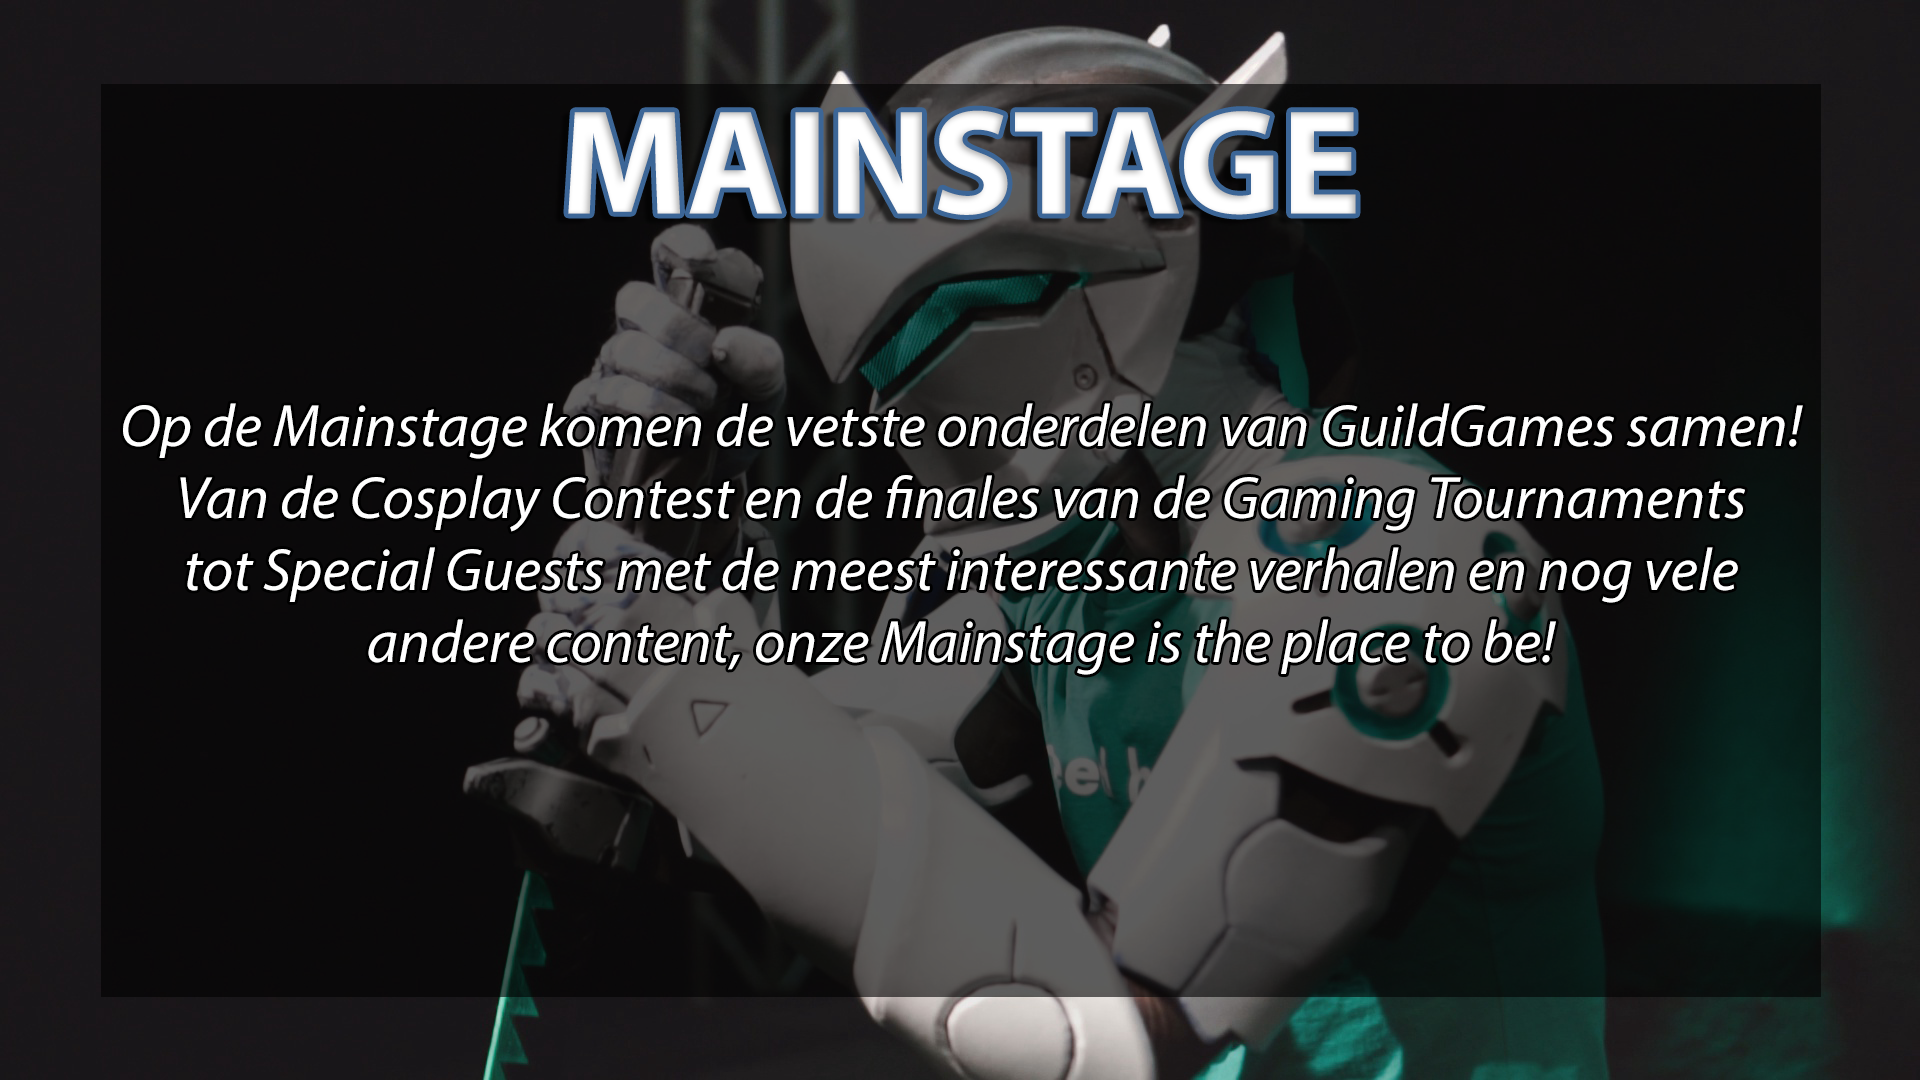 Placeholder Mainstage